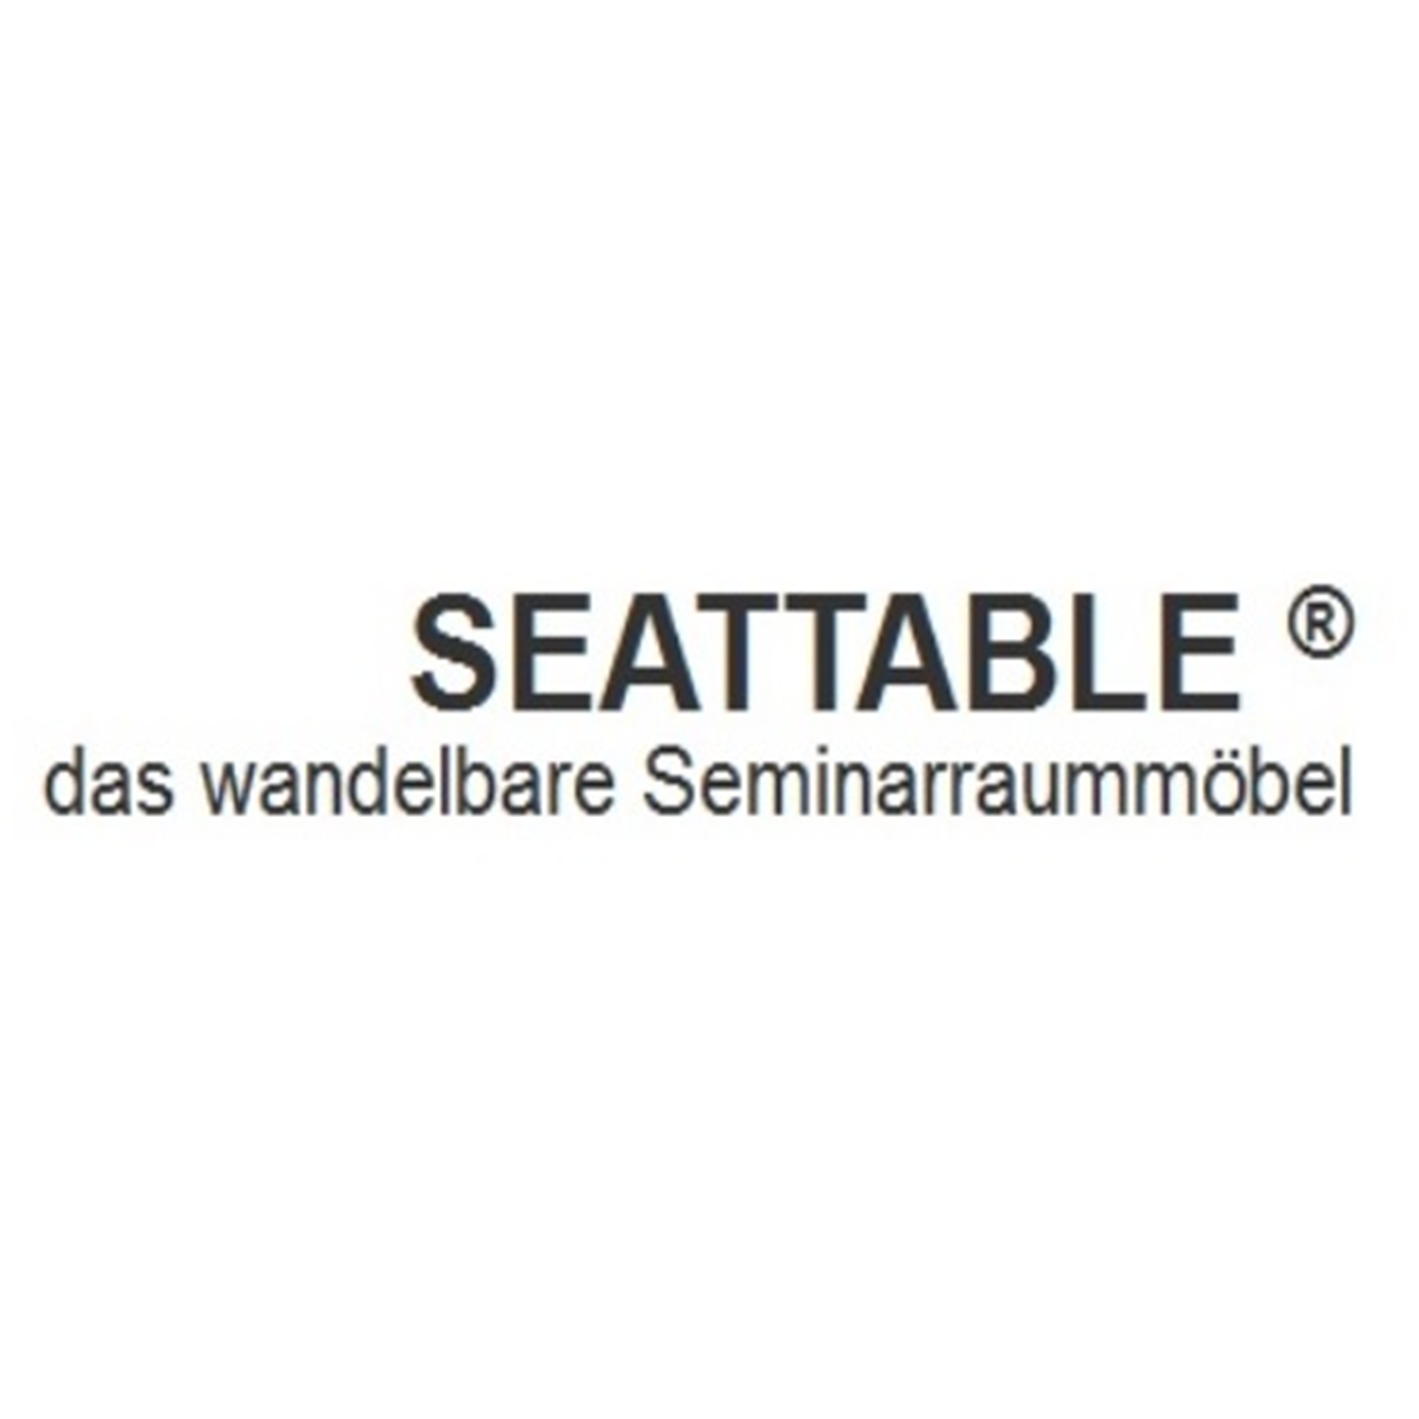 Seattable